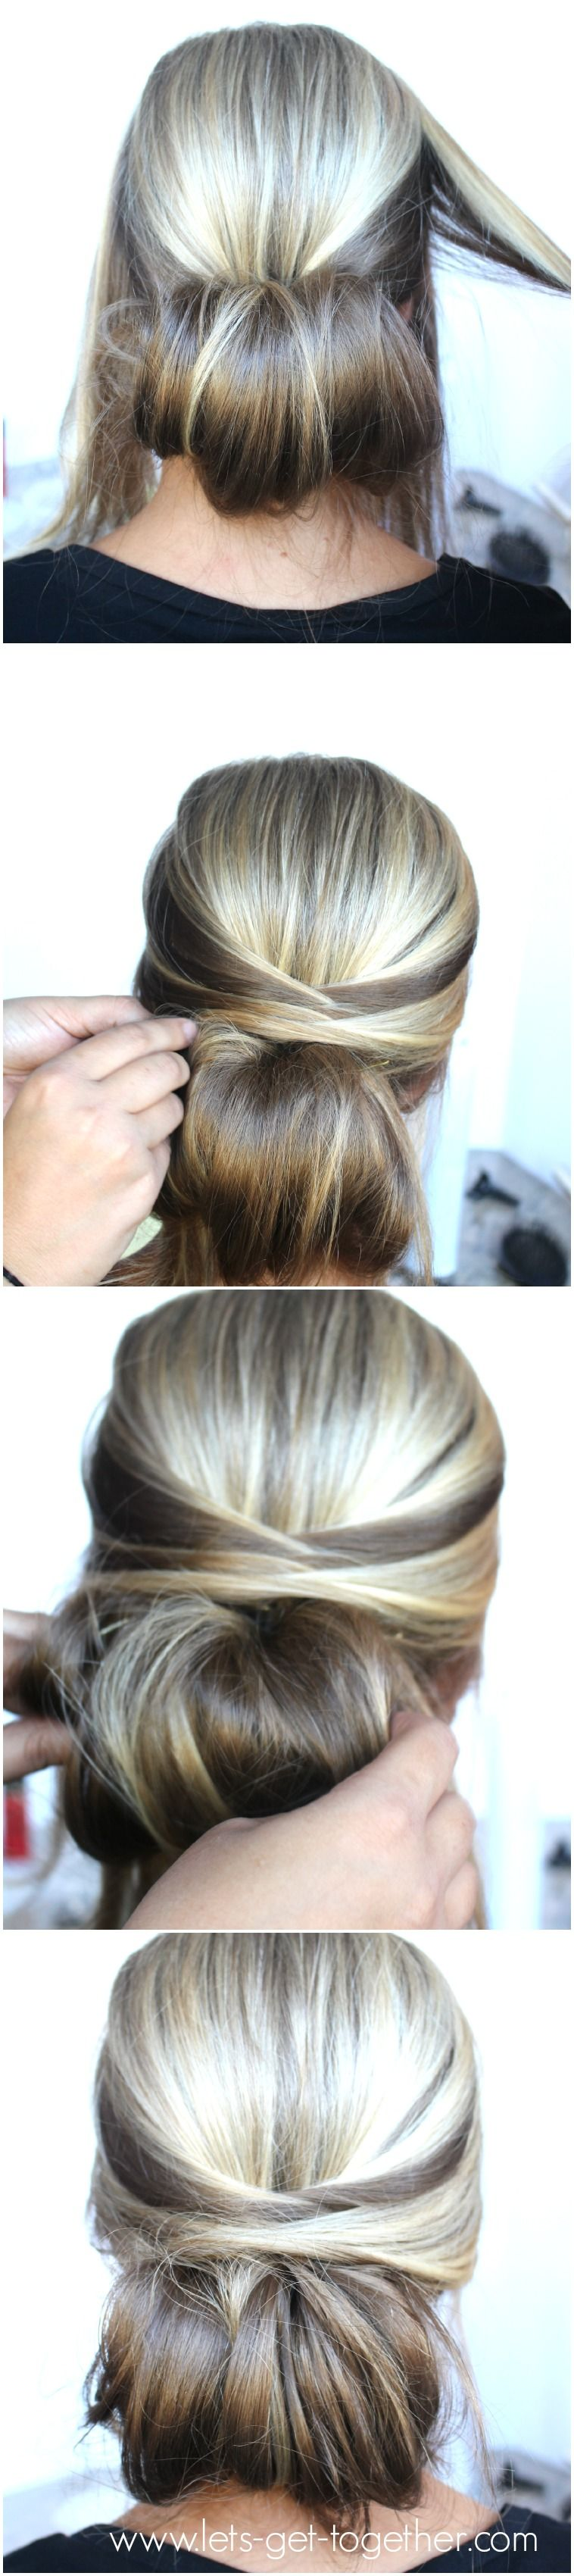 Step dance dos updo rock and hair style